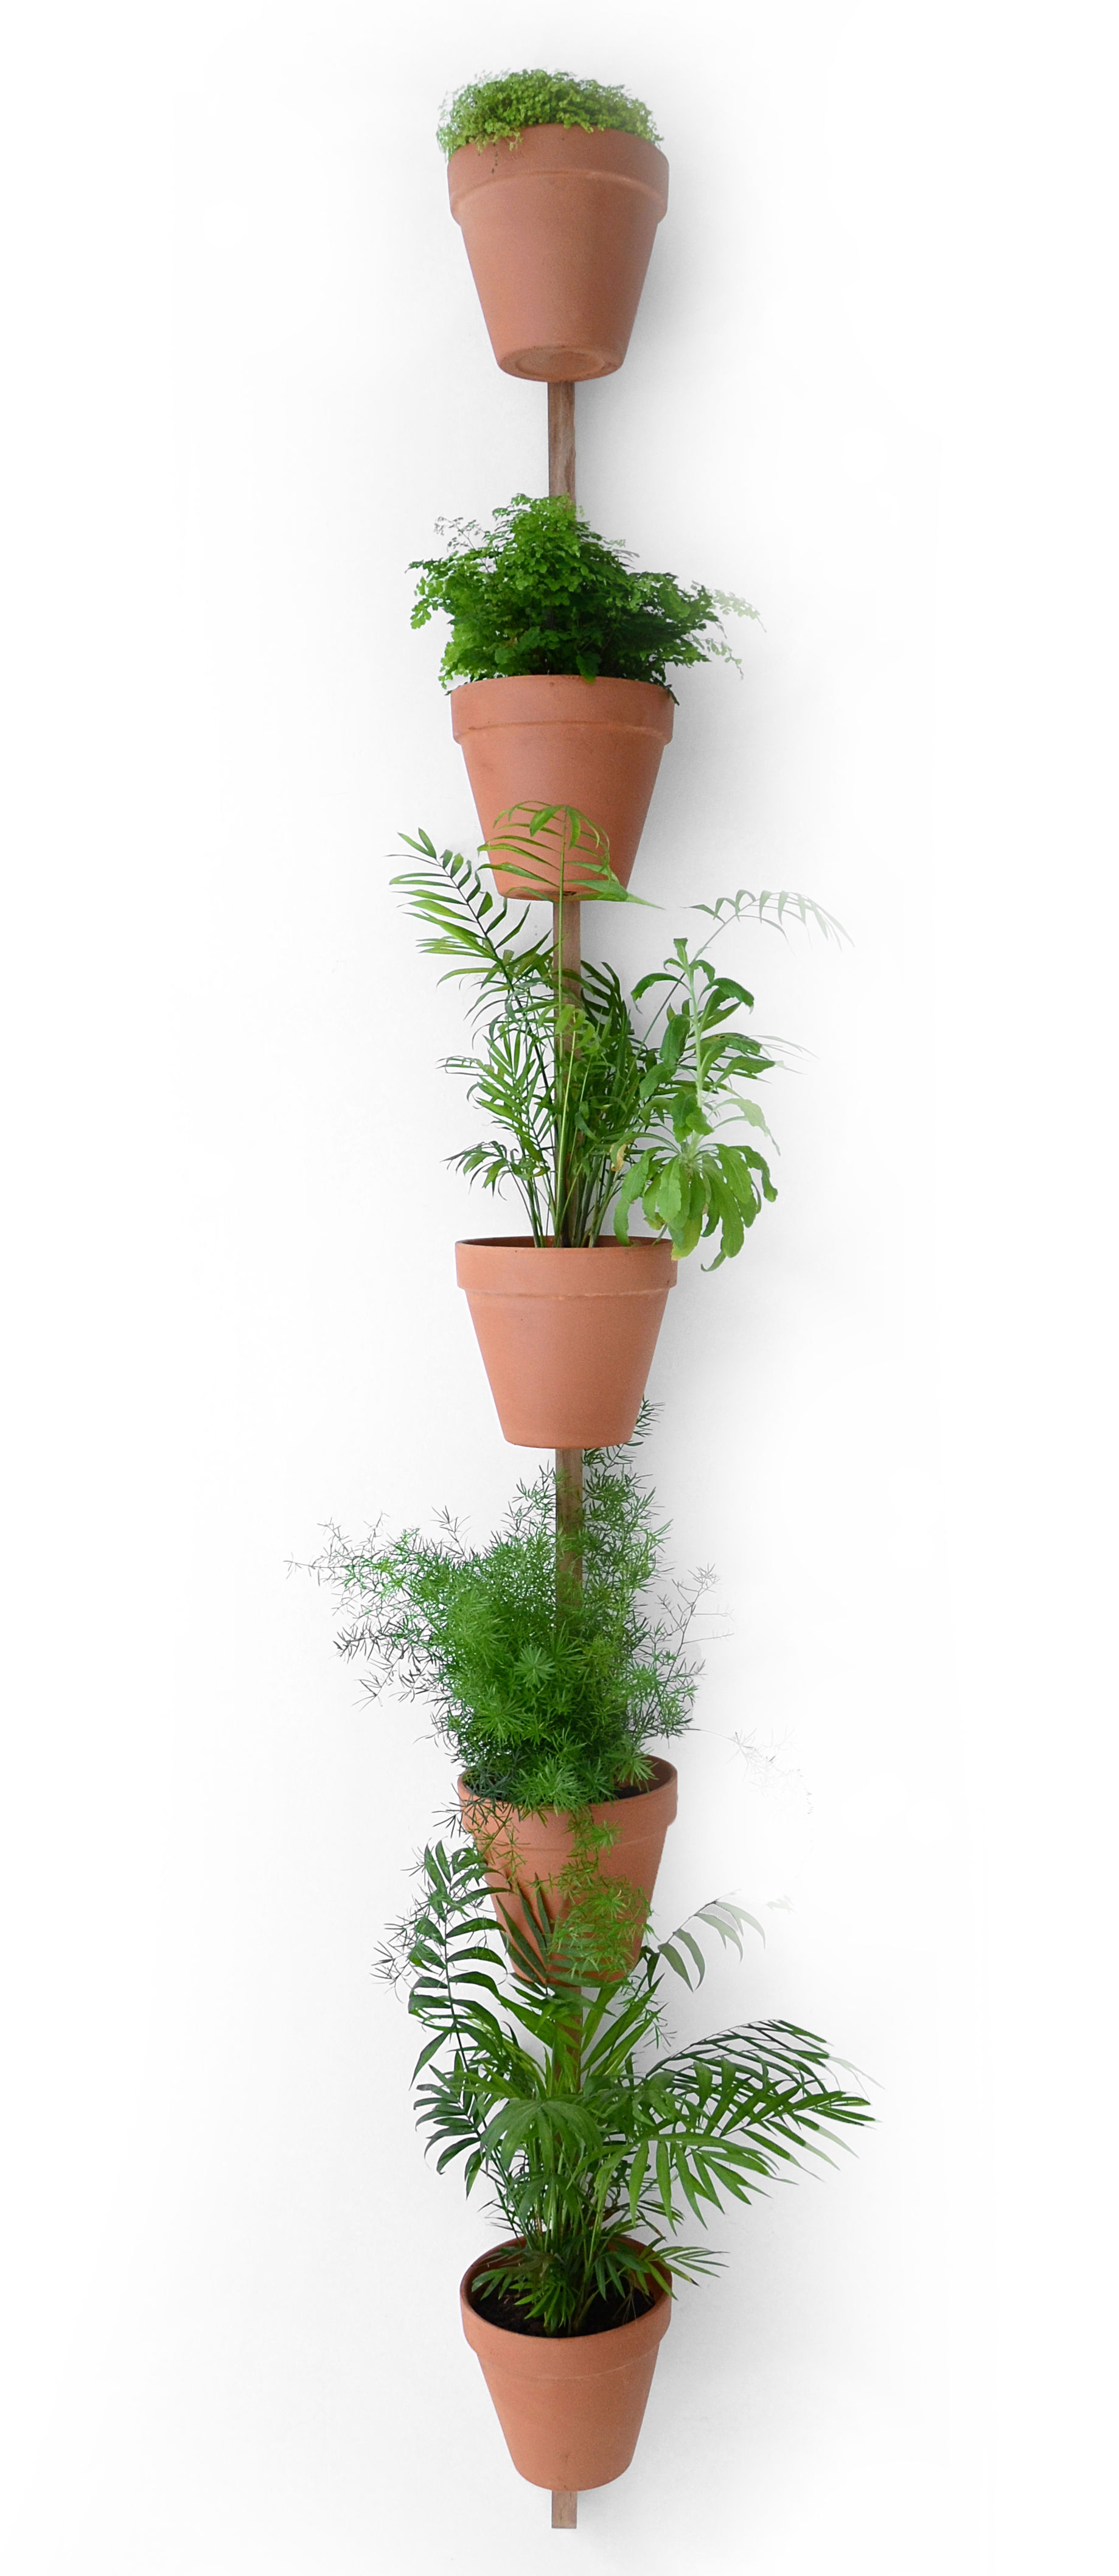 Decoration - Flower Pots & House Plants - XPOT Wall fixation by Compagnie - Natural wood - Solid oak